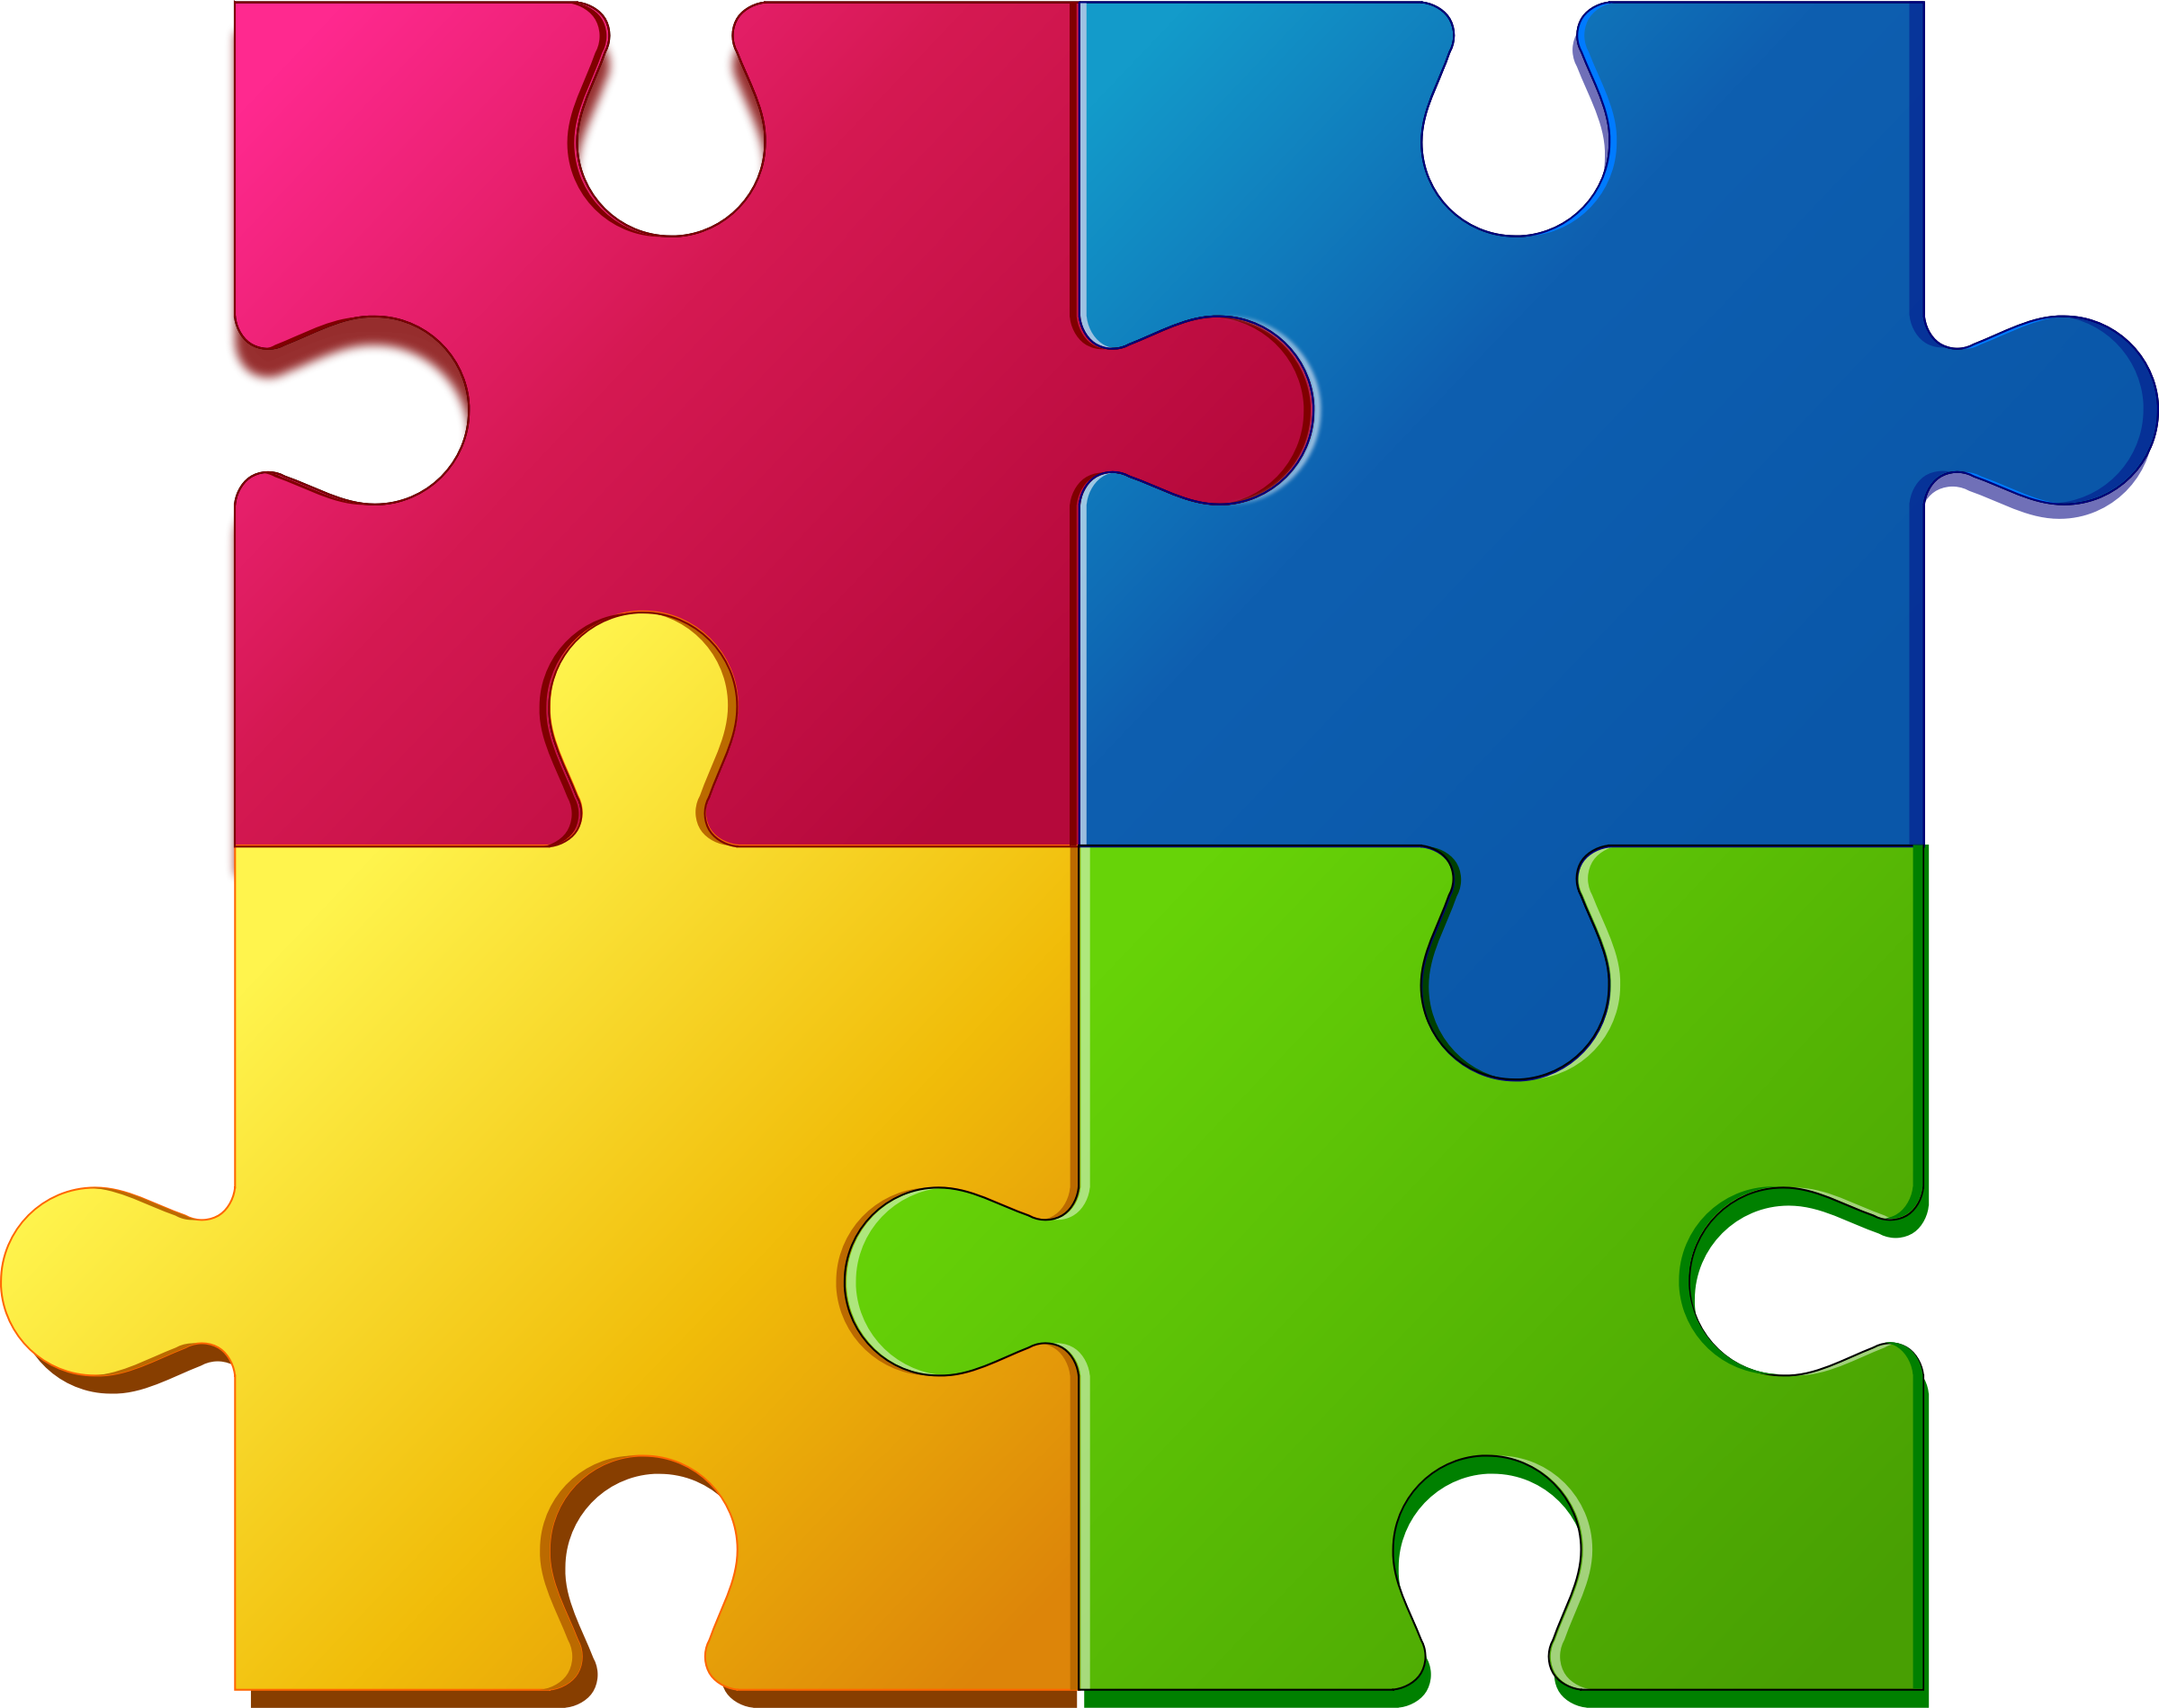 Puzzle clipart #14, Download drawings